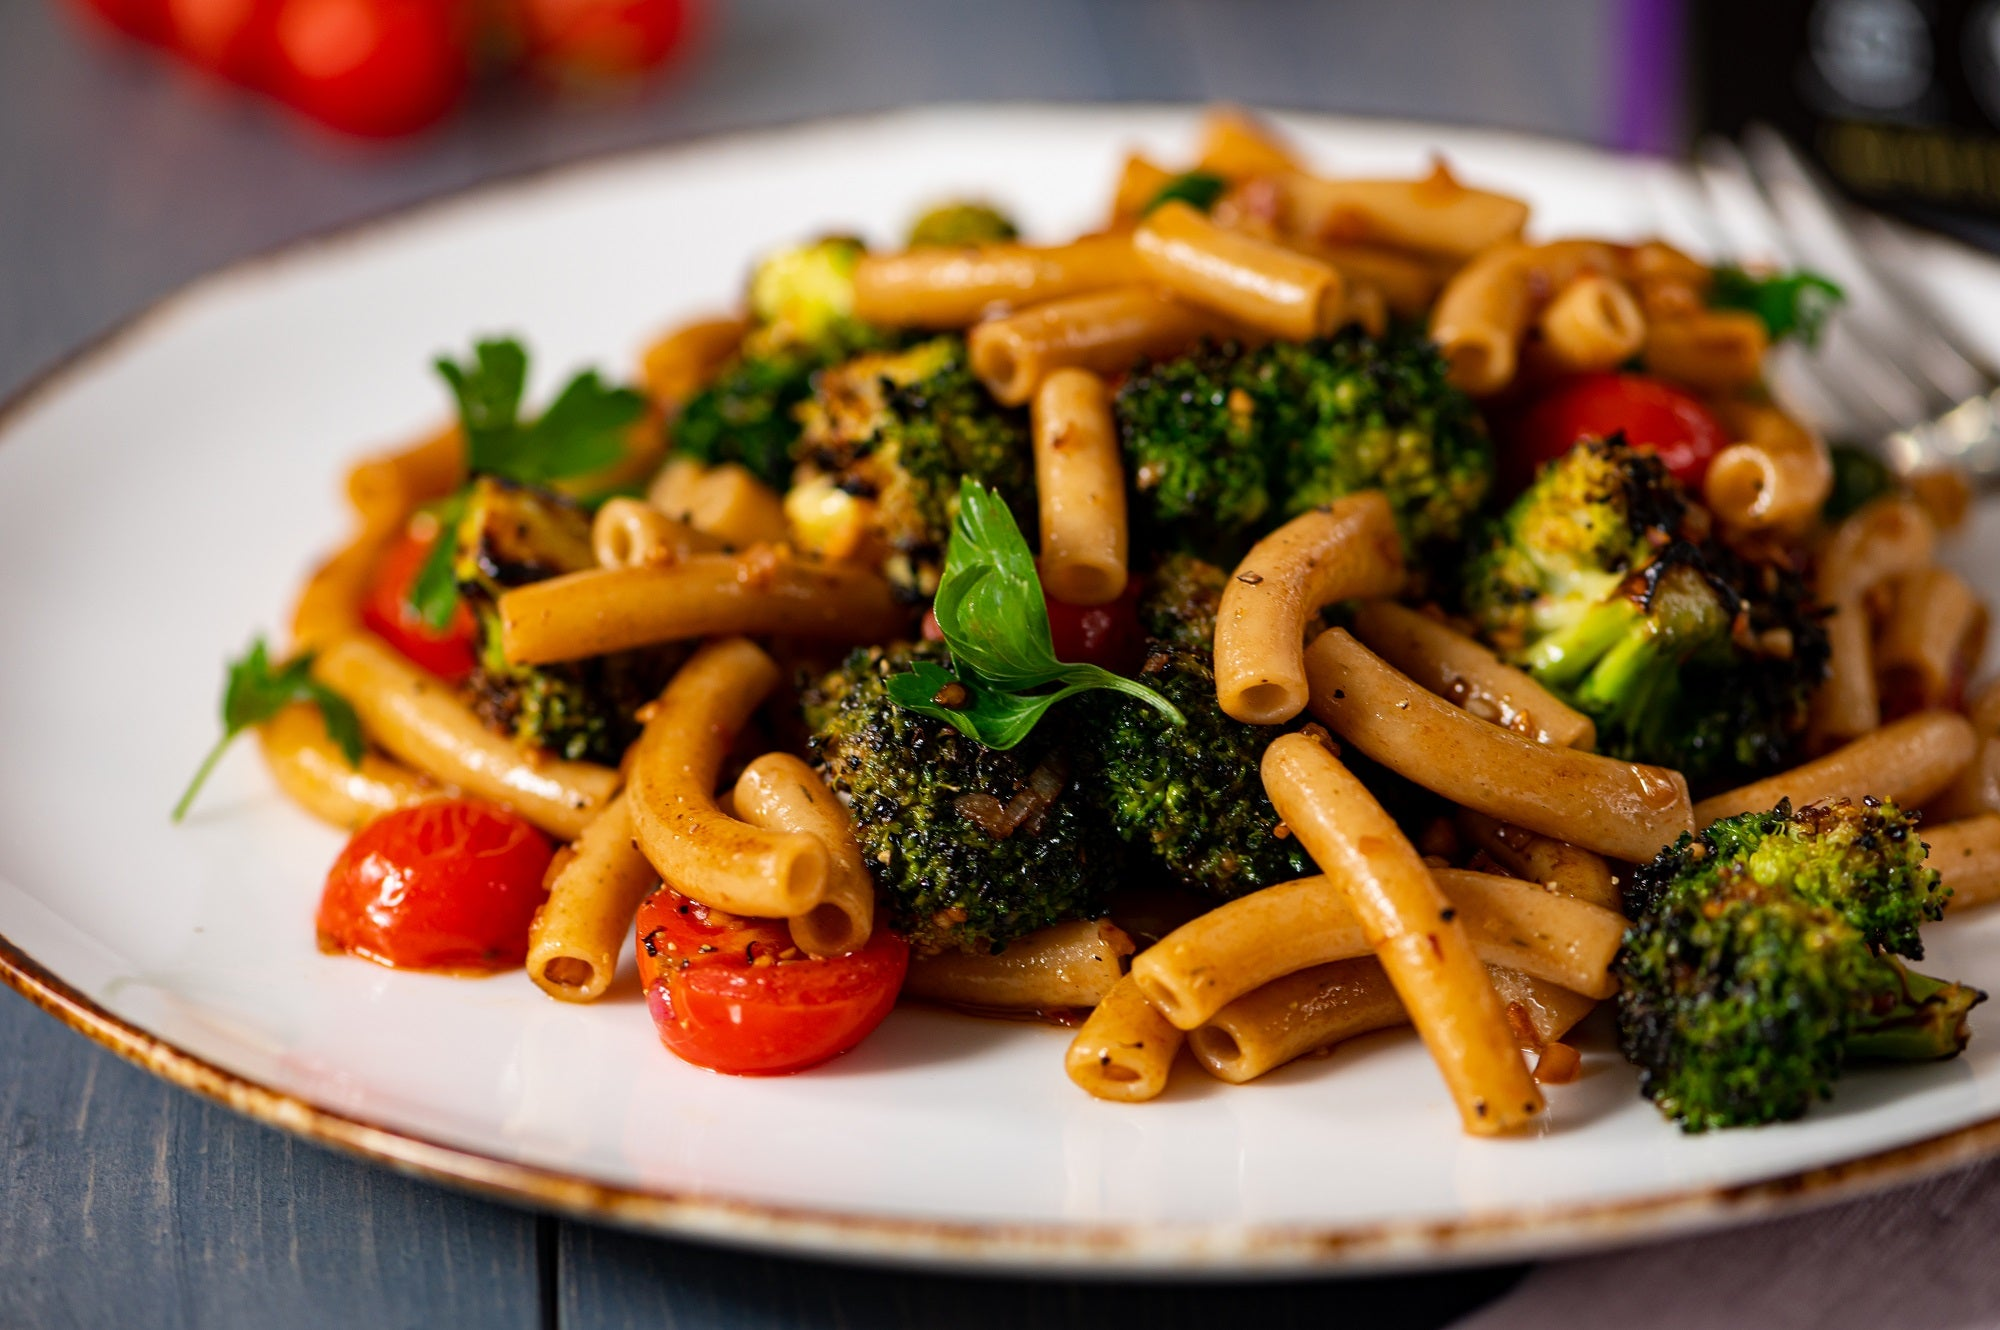 Garlic Parsley Ziti with Grilled Broccoli & Tomatoes